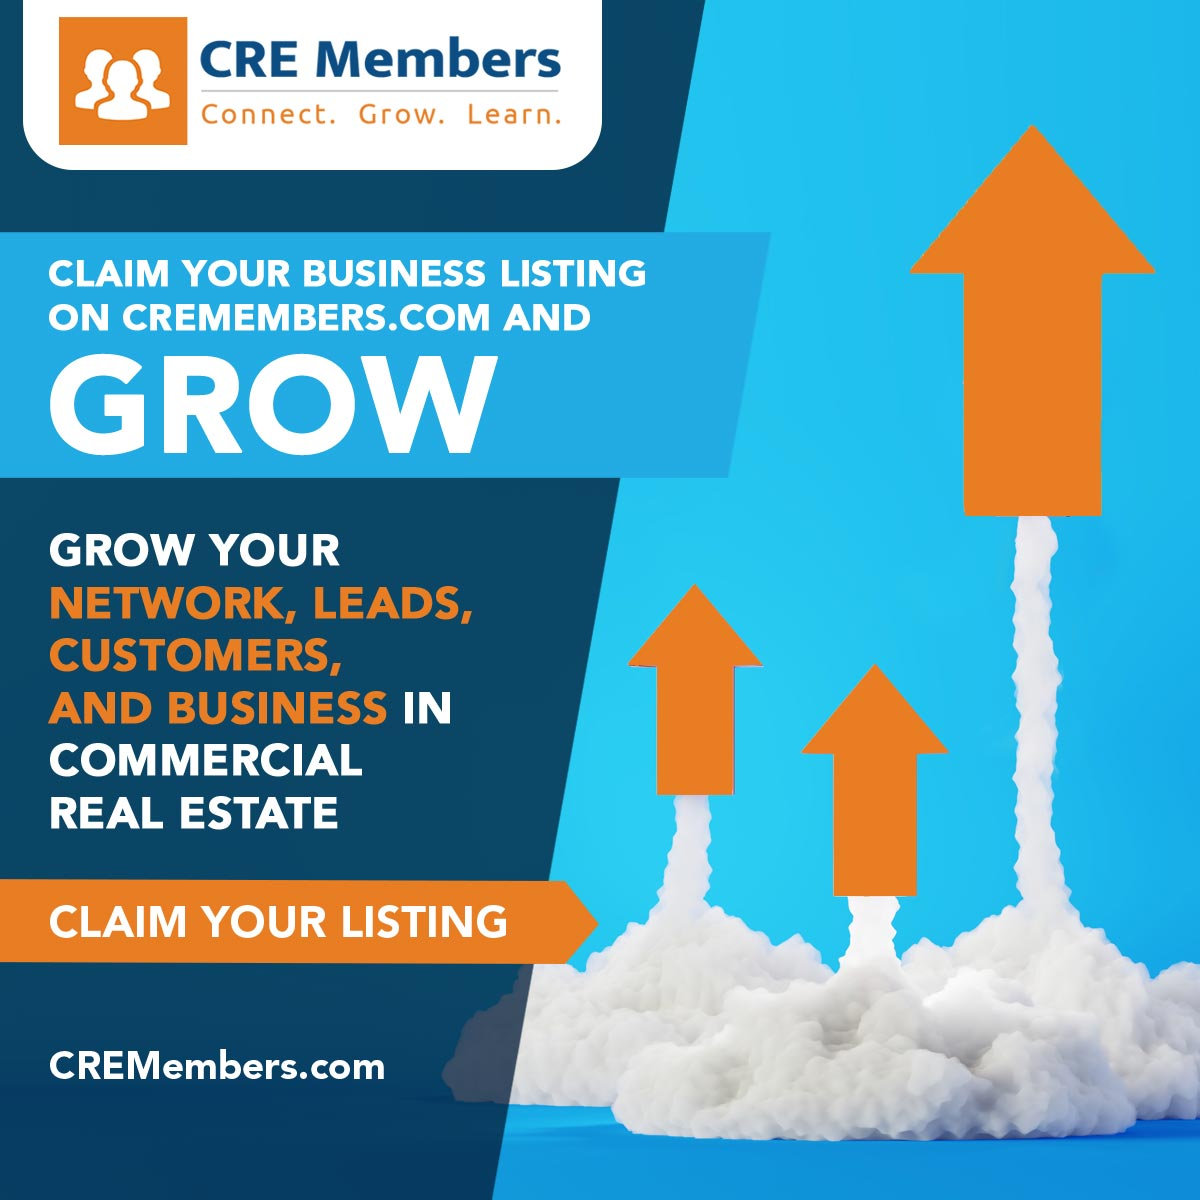 CRE Members Network For Commercial Real Estate Professionals Claim Your Business Listing